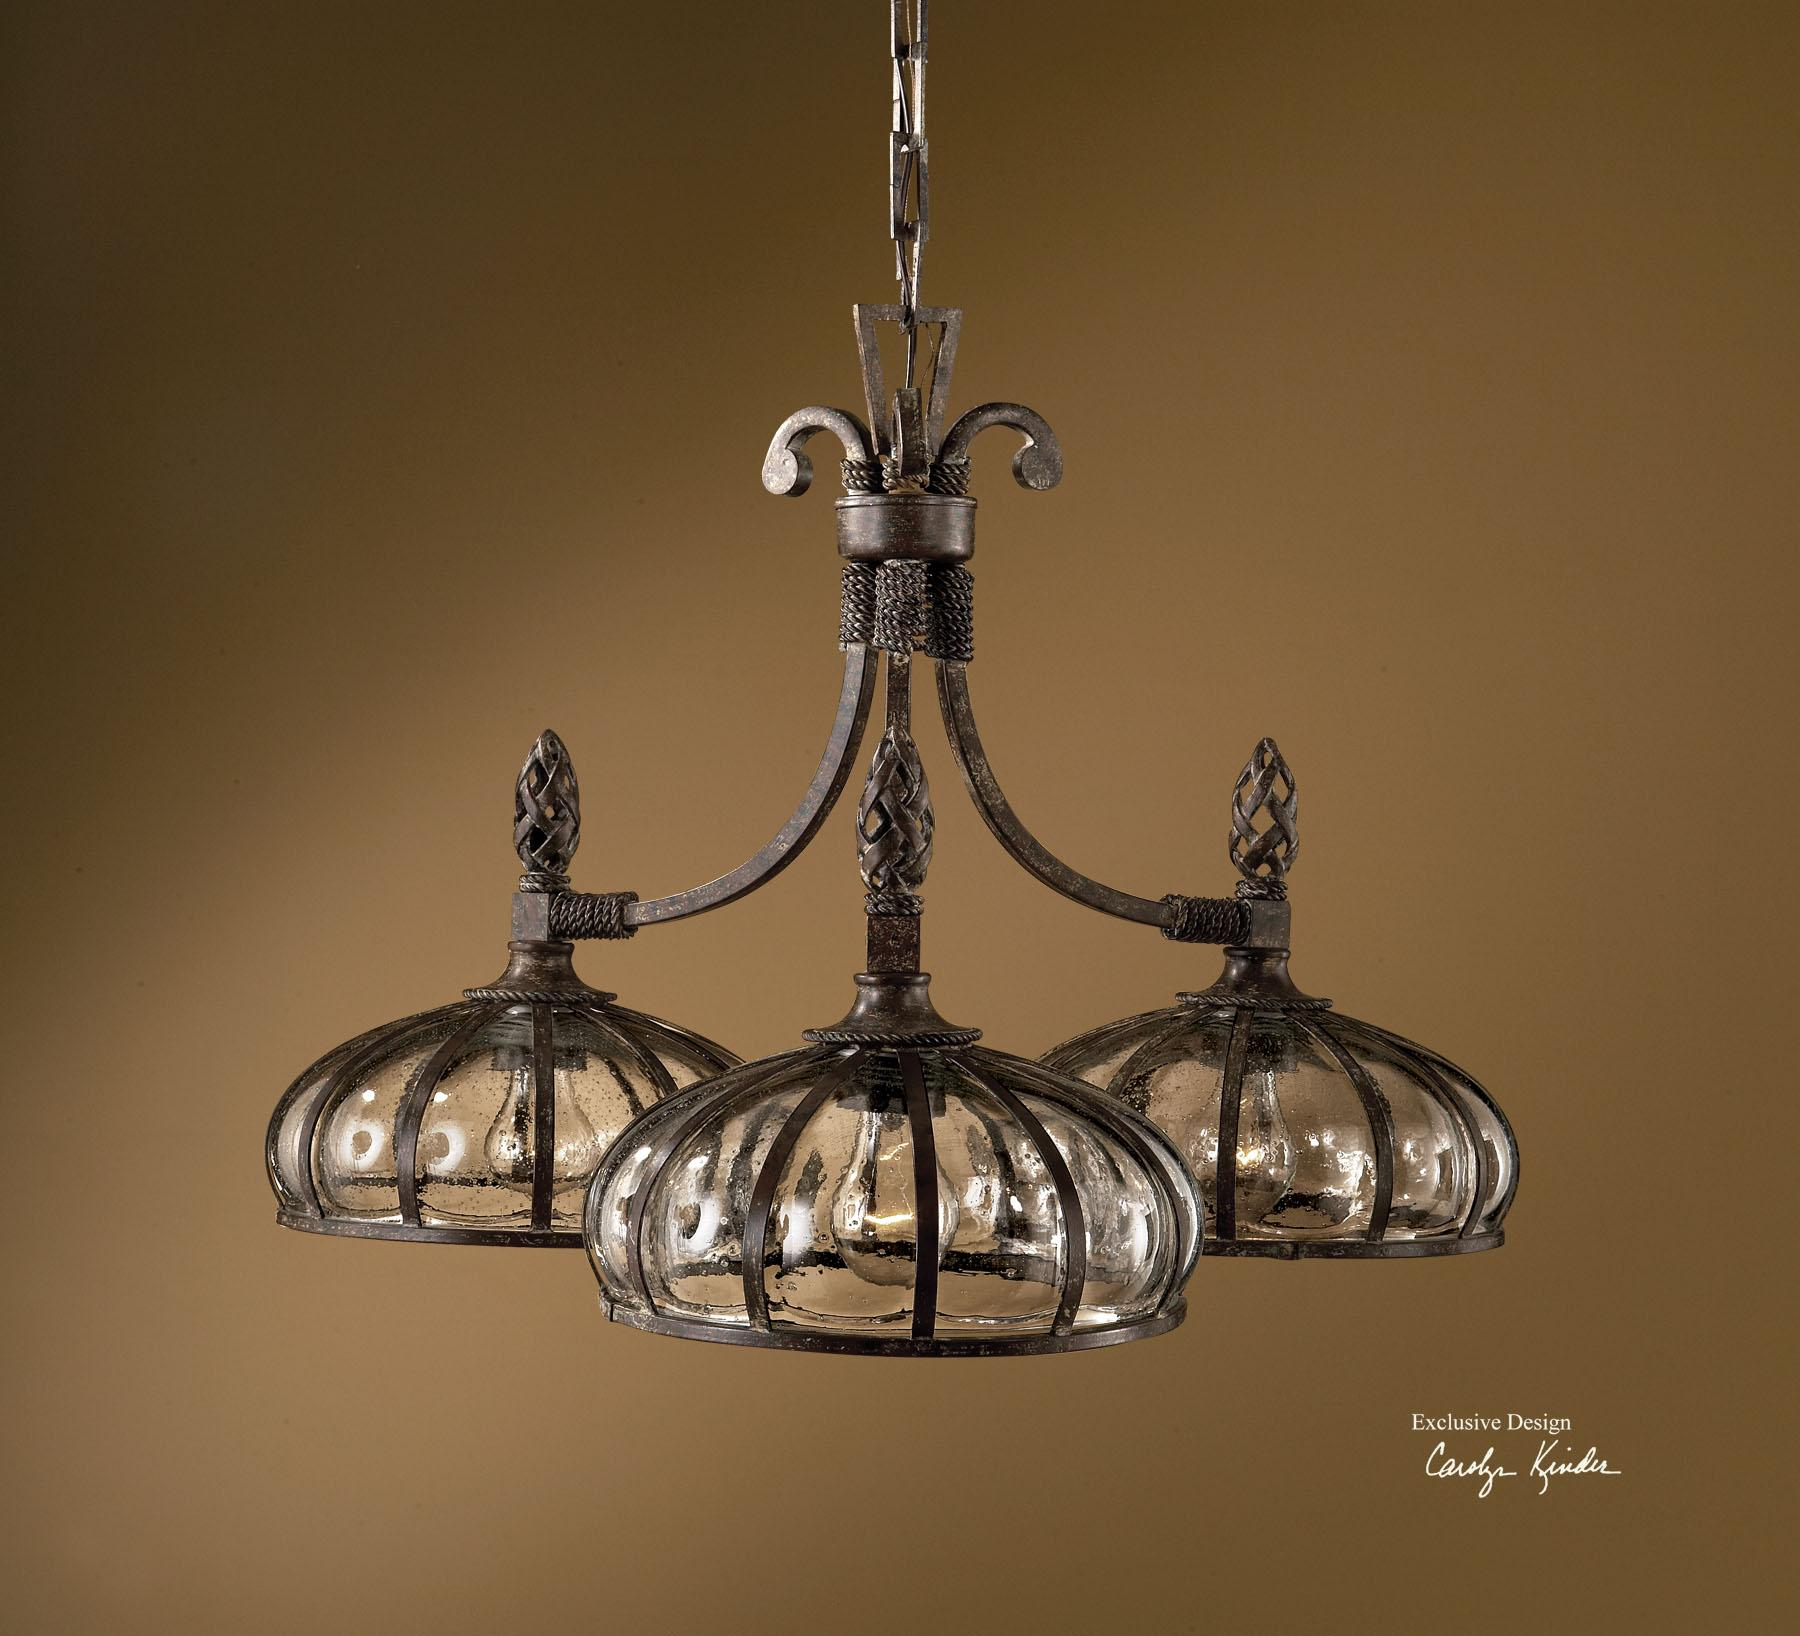 Uttermost Lighting Fixtures Galeana 3-Light Chandelier - Item Number: 21046